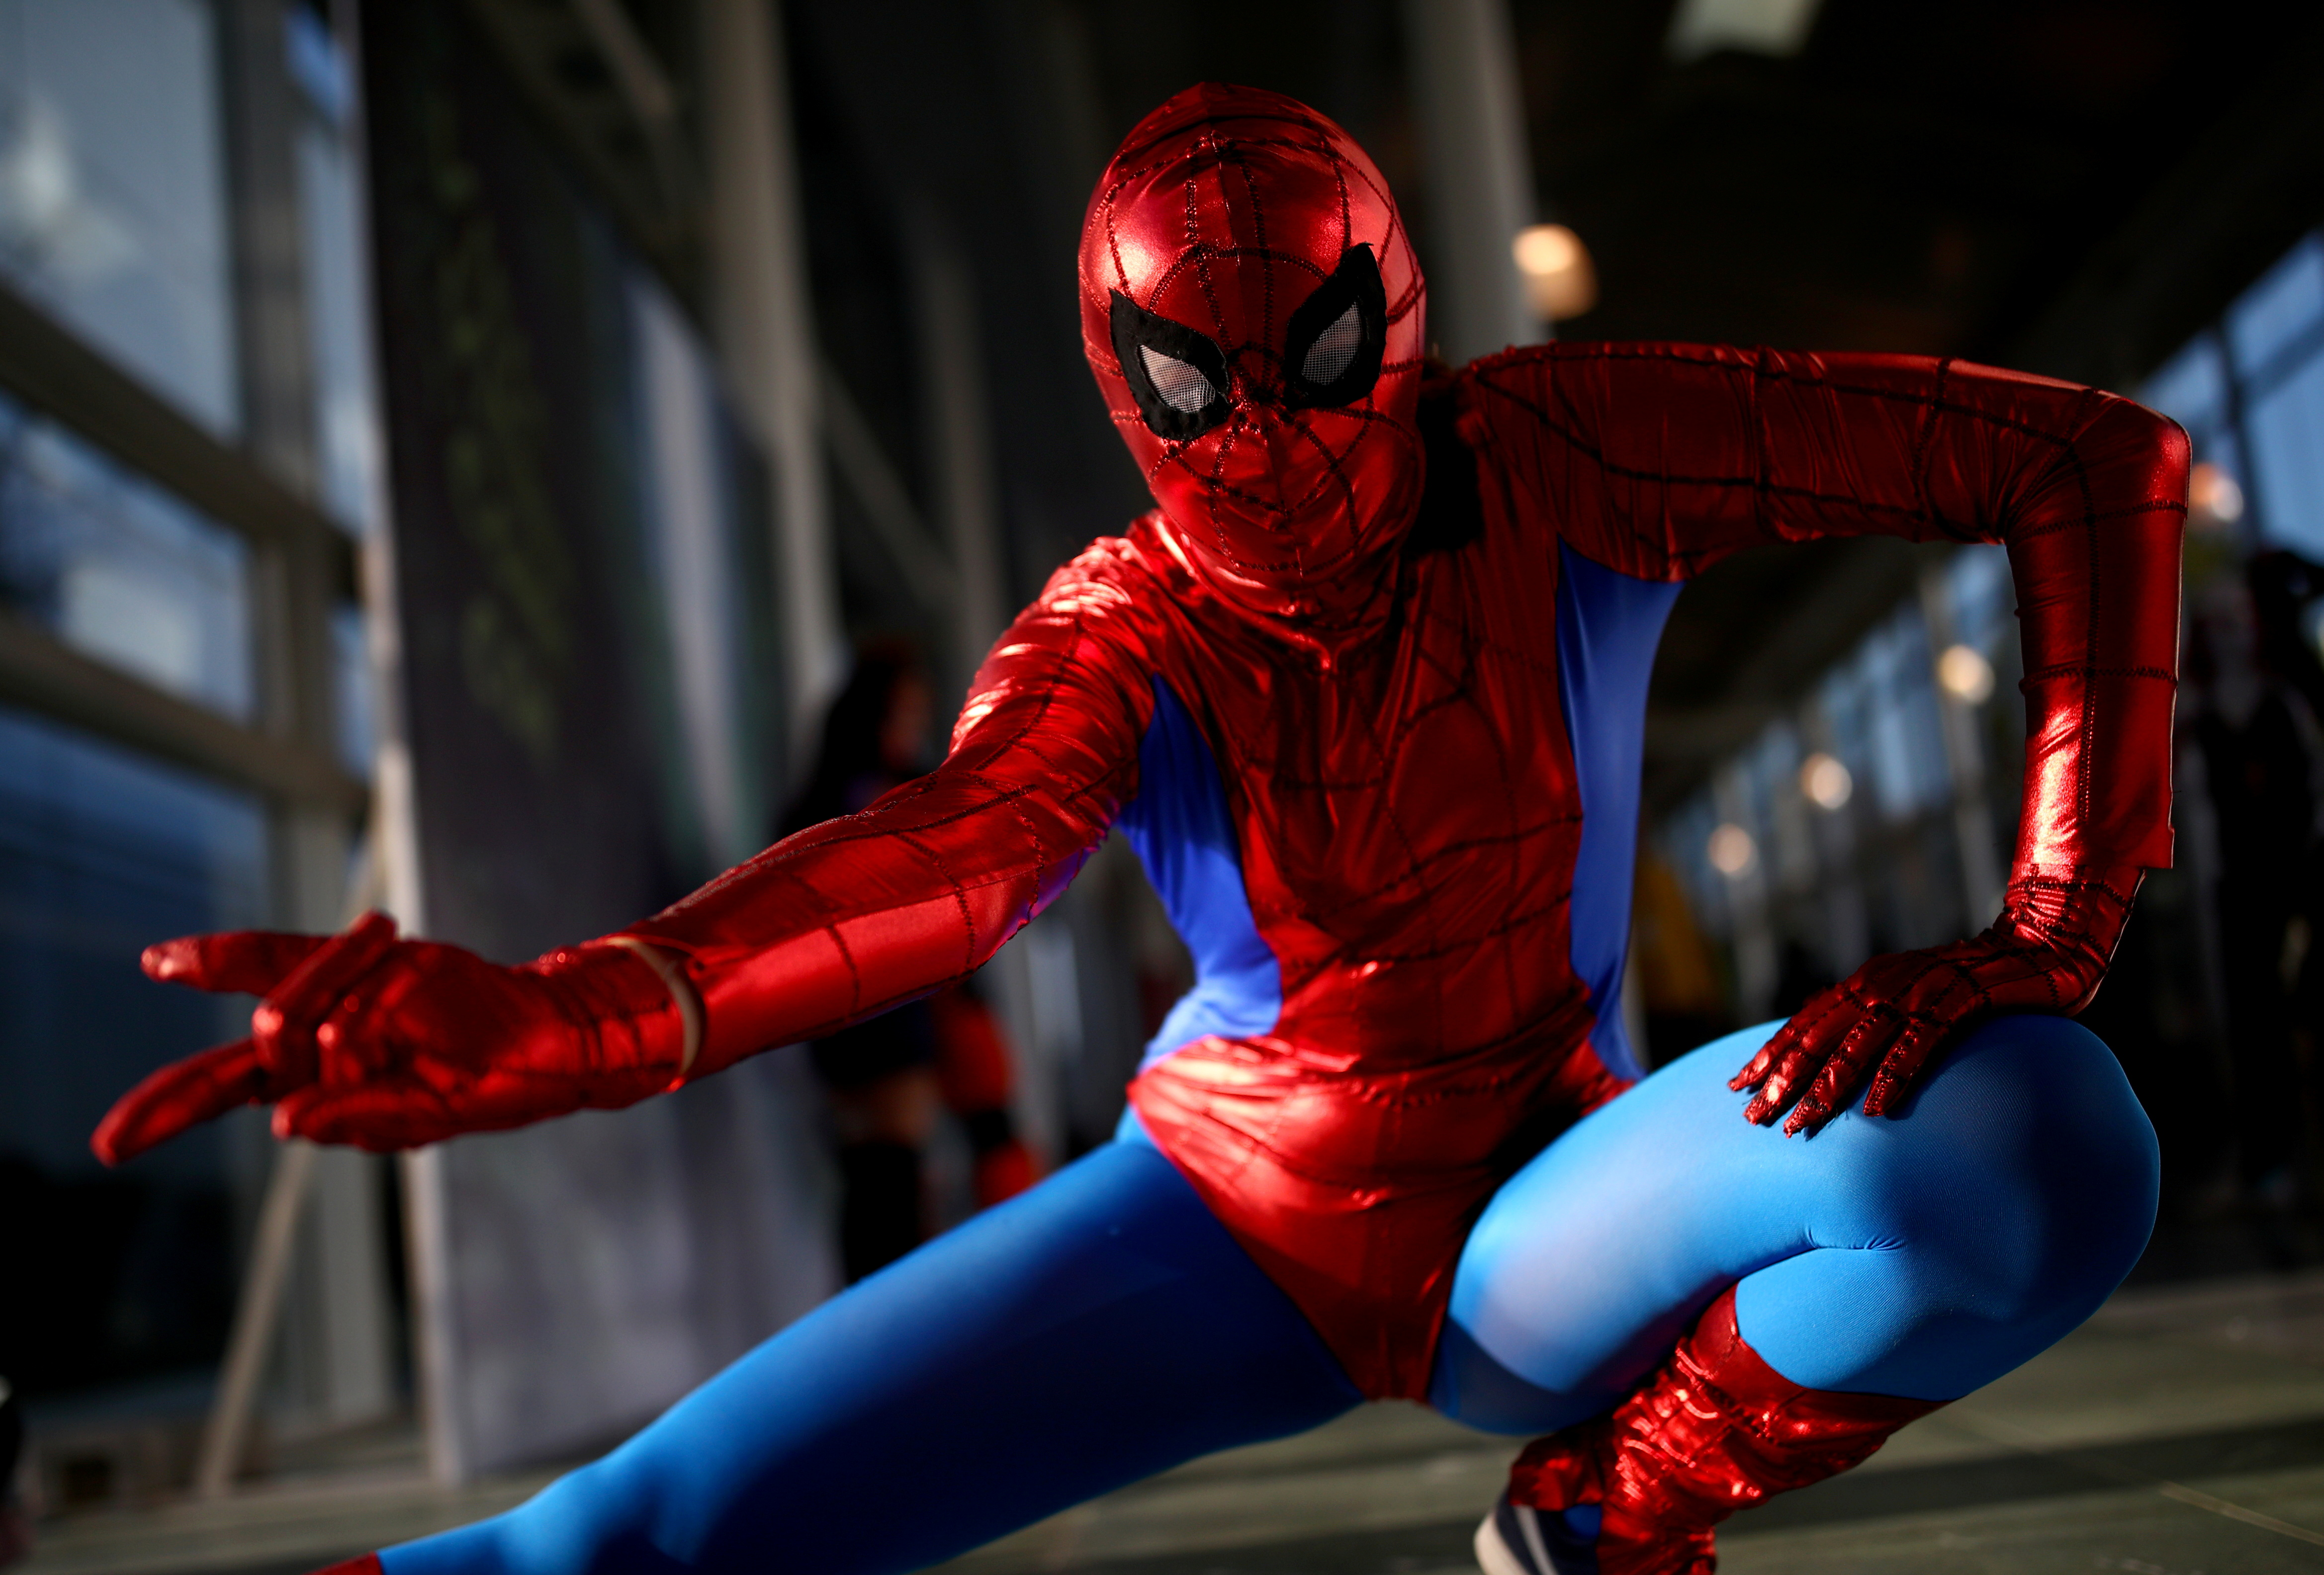 A cosplayer costumed as Spider-Man poses during the Vienna Comic Con, Austria, November 17, 2018. REUTERS/Lisi Niesner